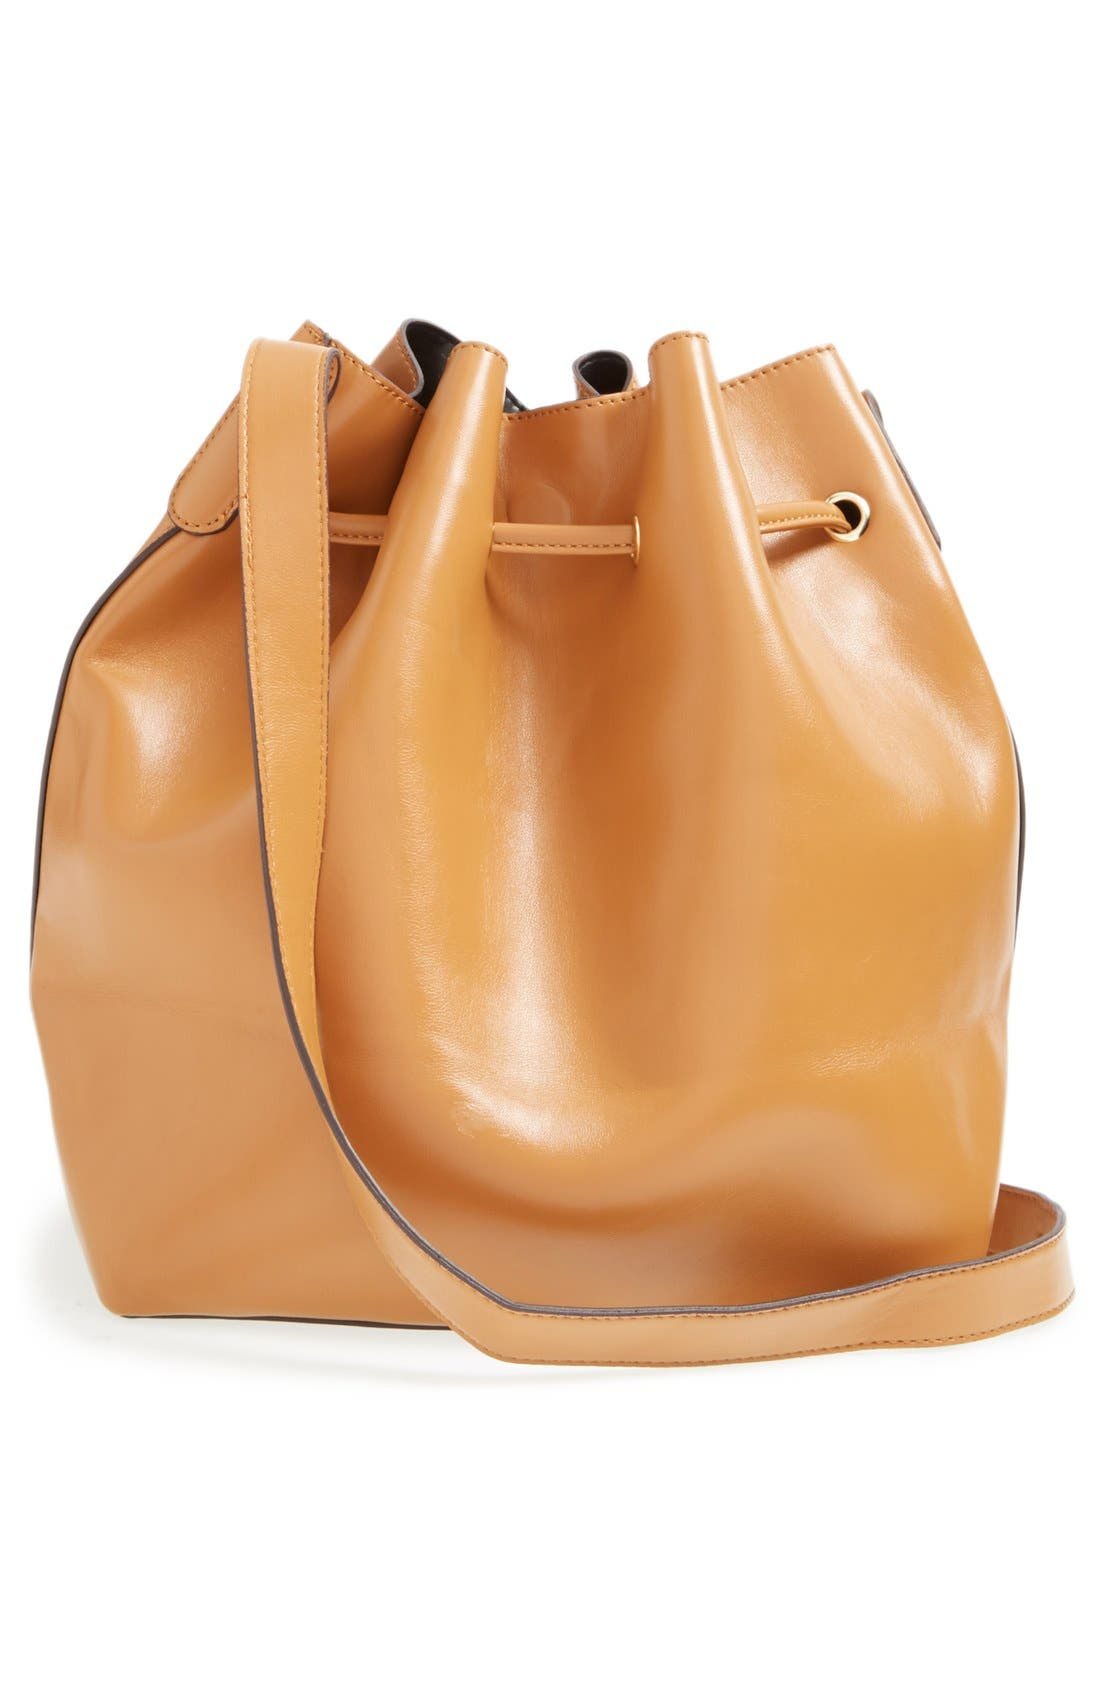 Alternate Image 3  - Sole Society 'Nevin' Faux Leather Drawstring Bucket Bag